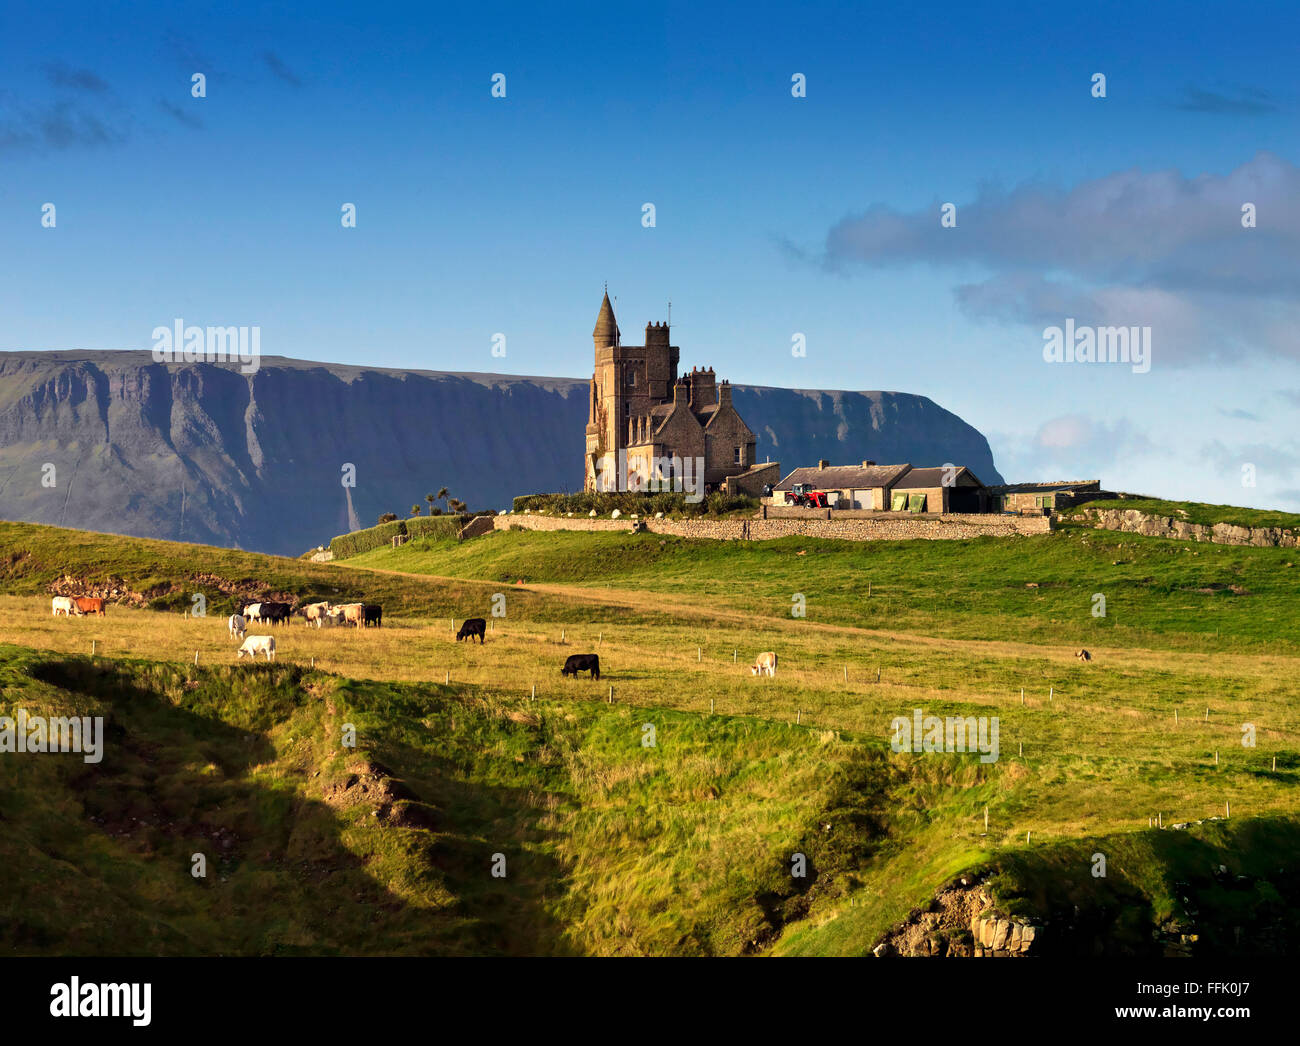 Mountbatten Castle Ireland High Resolution Stock Photography And Images Alamy